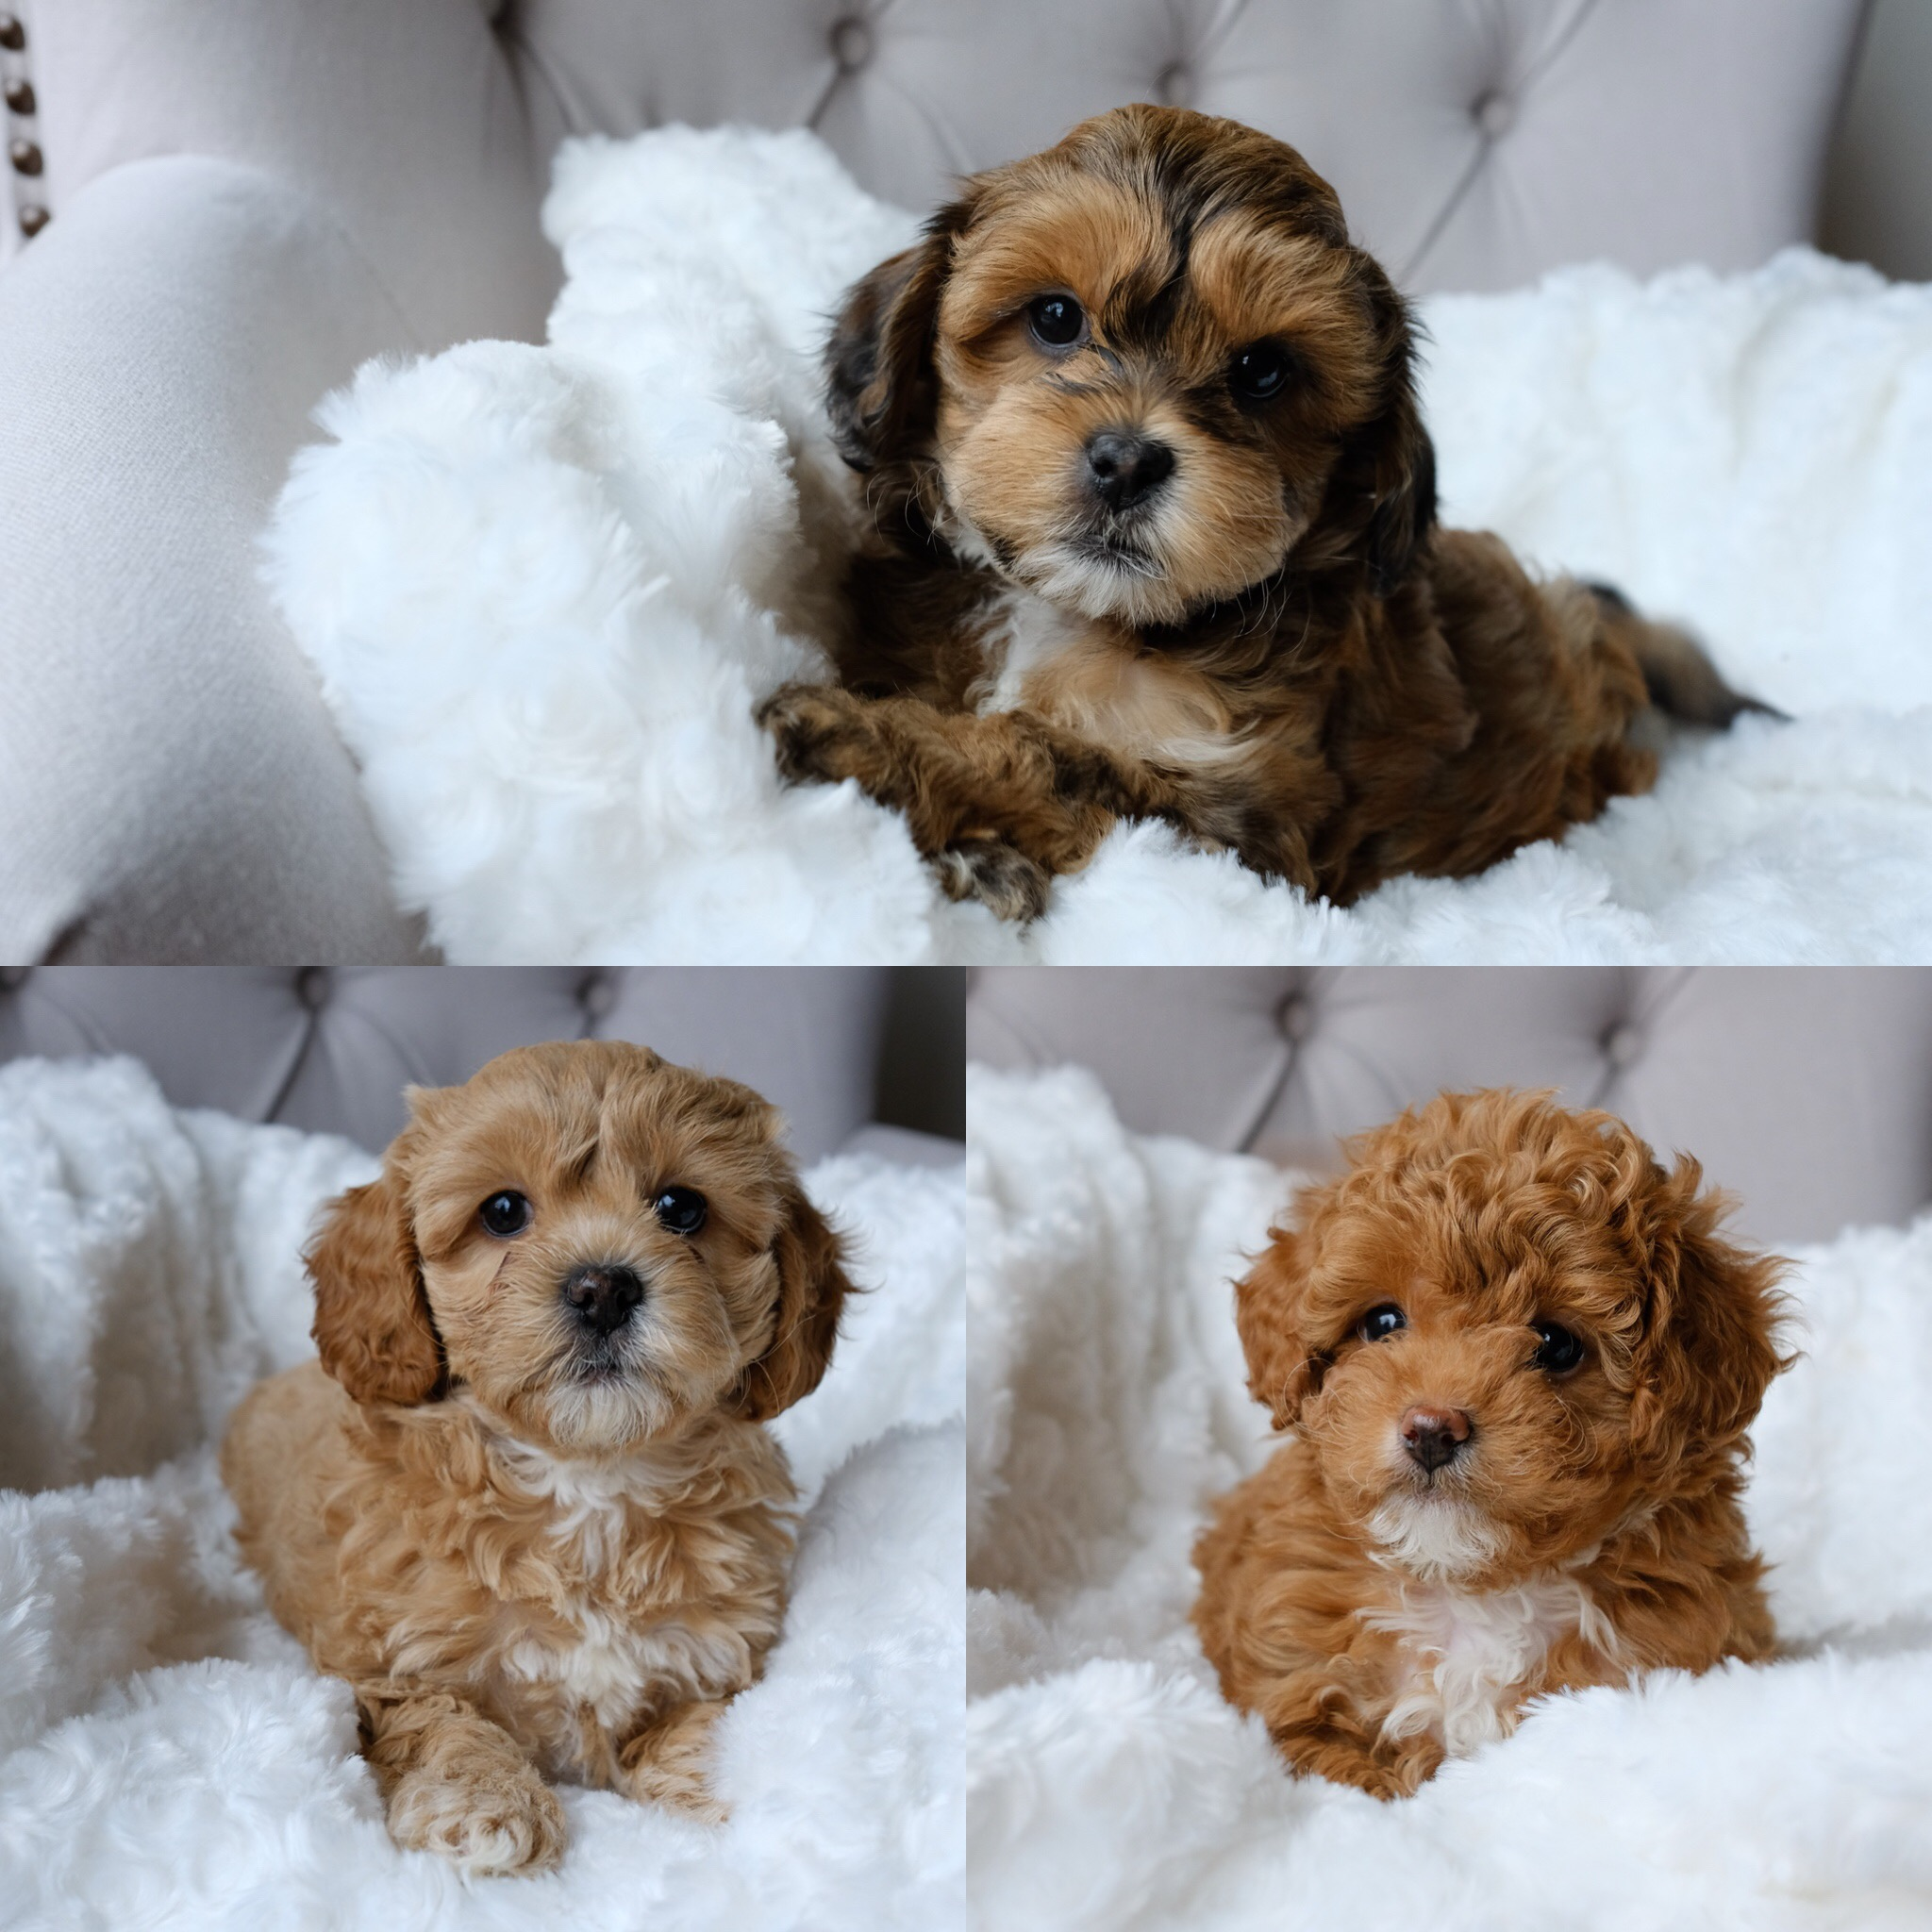 Rosie and Fergie's Cavapoochon litter born February 9, 2018